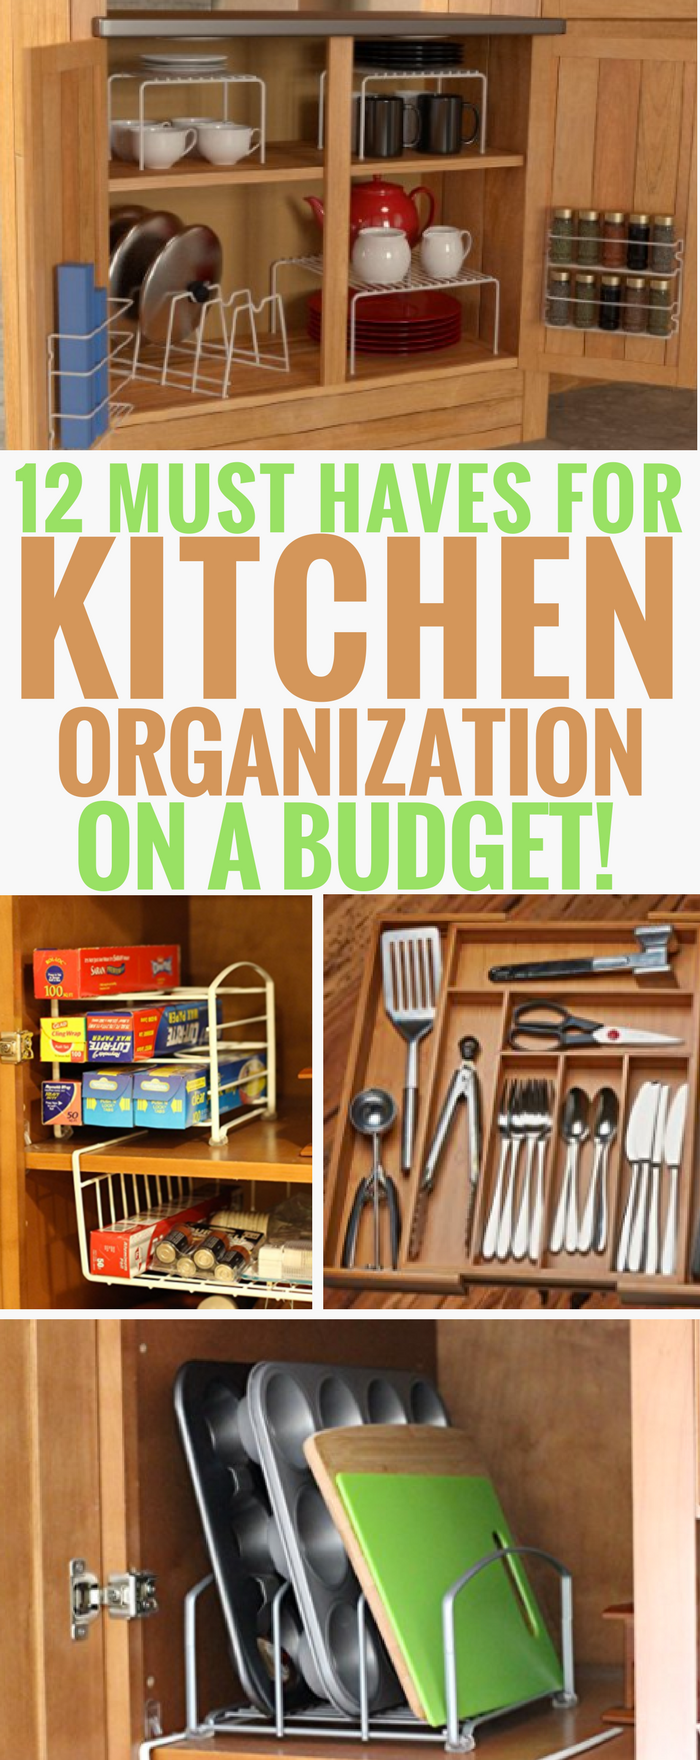 must have products for kitchen organization on a budget perfect for small spaces ideas for on kitchen organization for small spaces id=22691